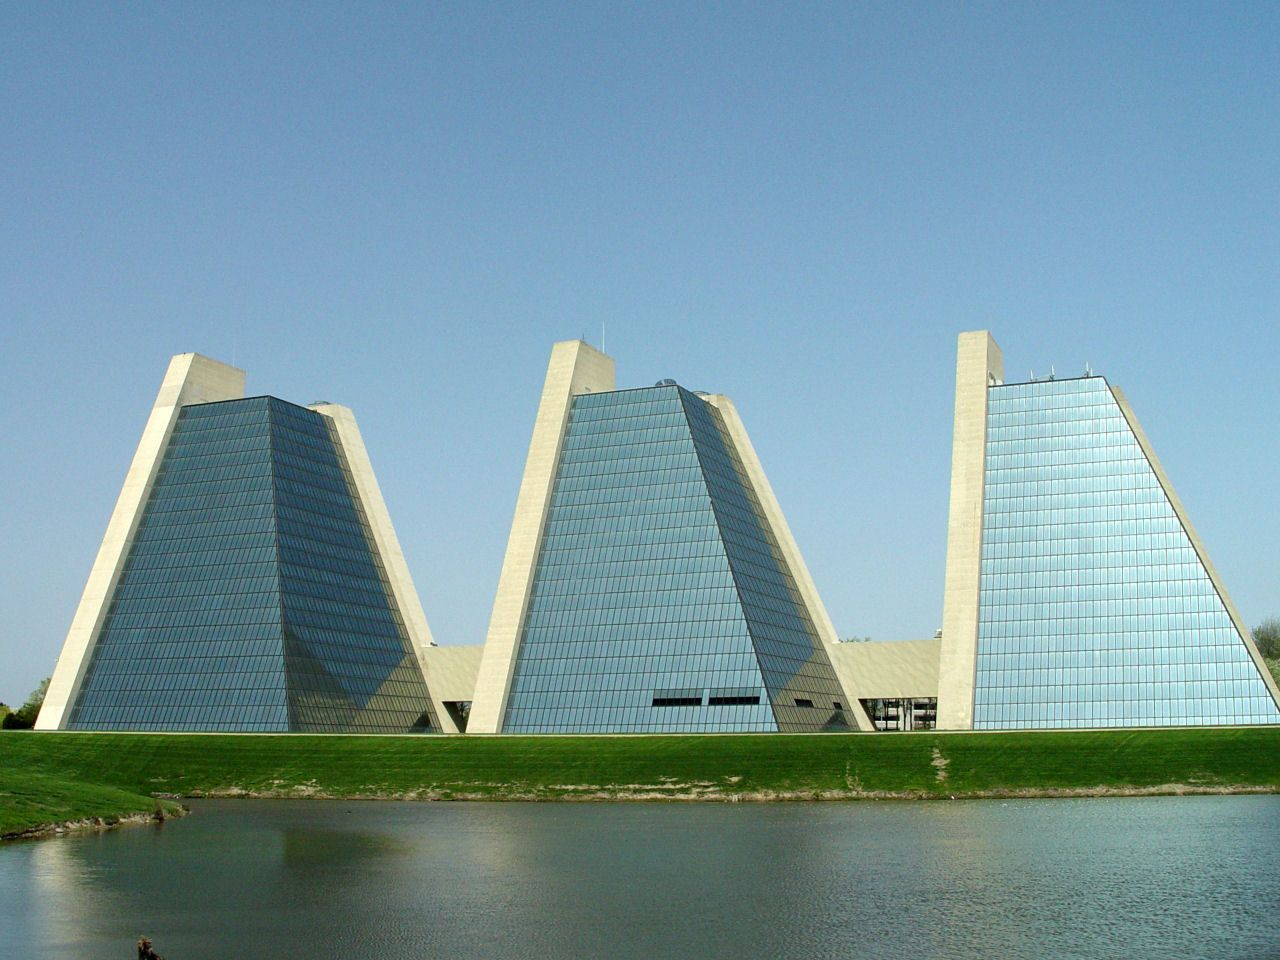 Kevin Roche The Pyramids Indianapolis Unusual Buildings Building Indianapolis Indiana